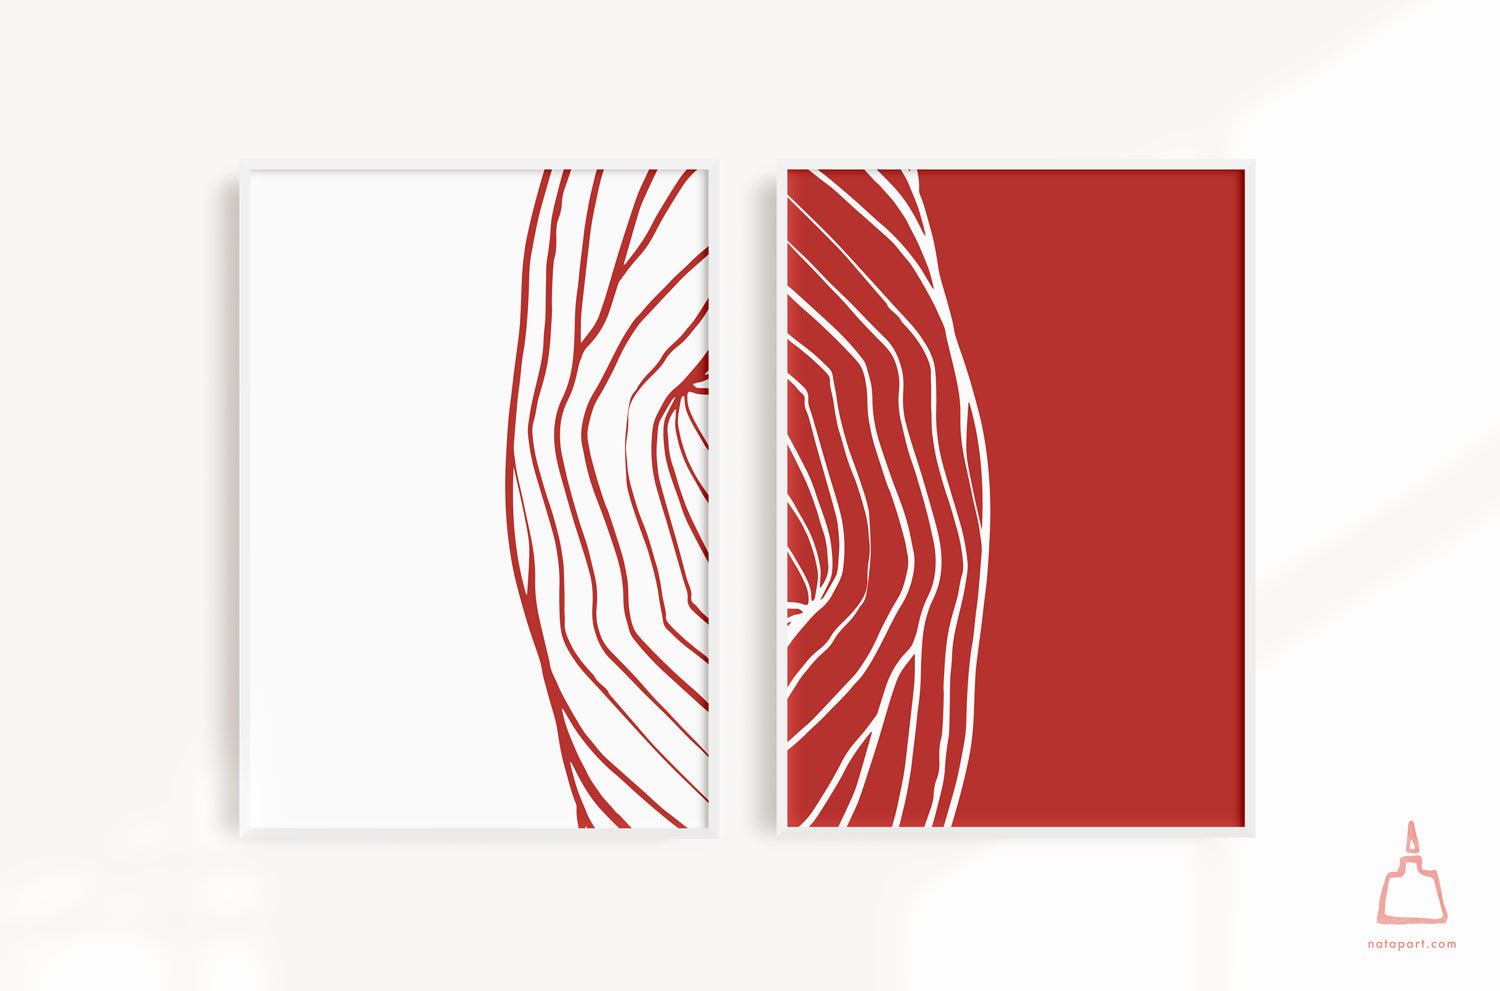 SET OF 2 ULURU LINES A PRINTABLE ART